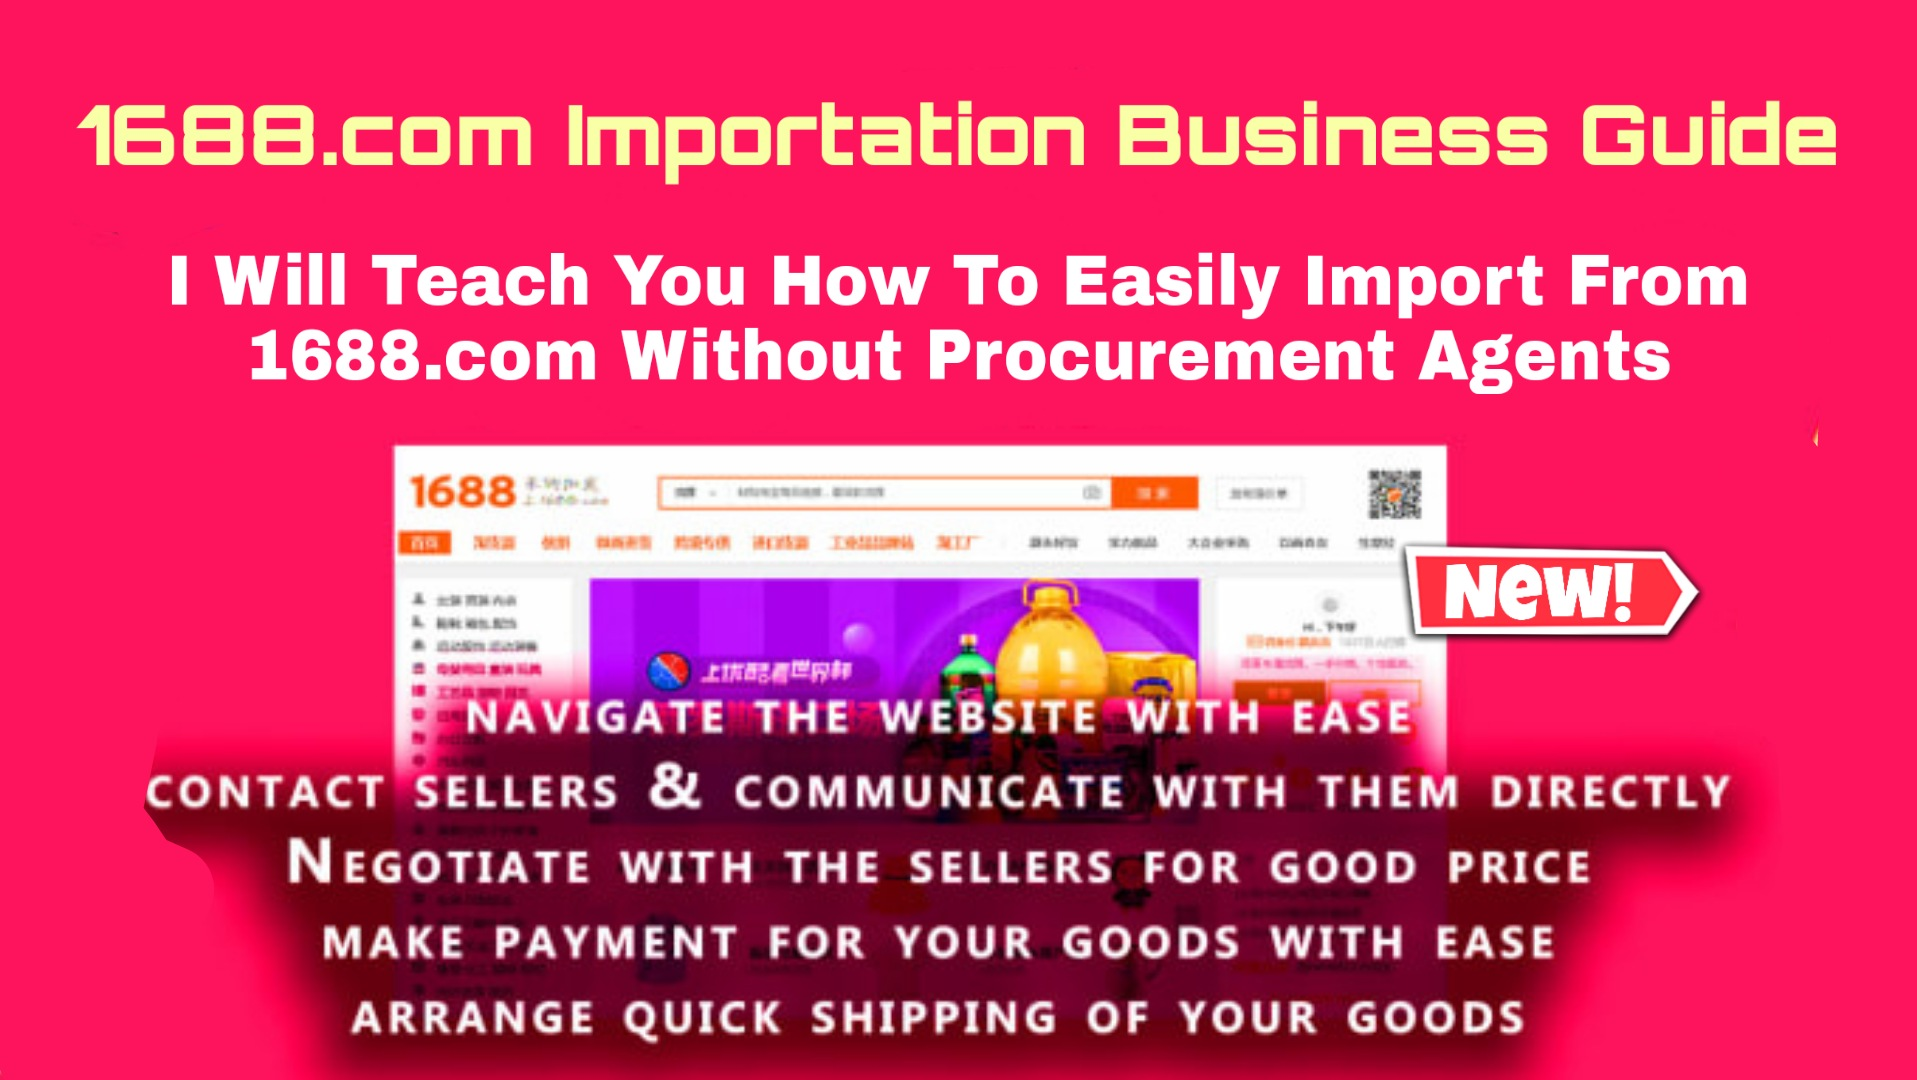 1688.com Importation Guide - Easily Import from China without procurement agents (pdf)